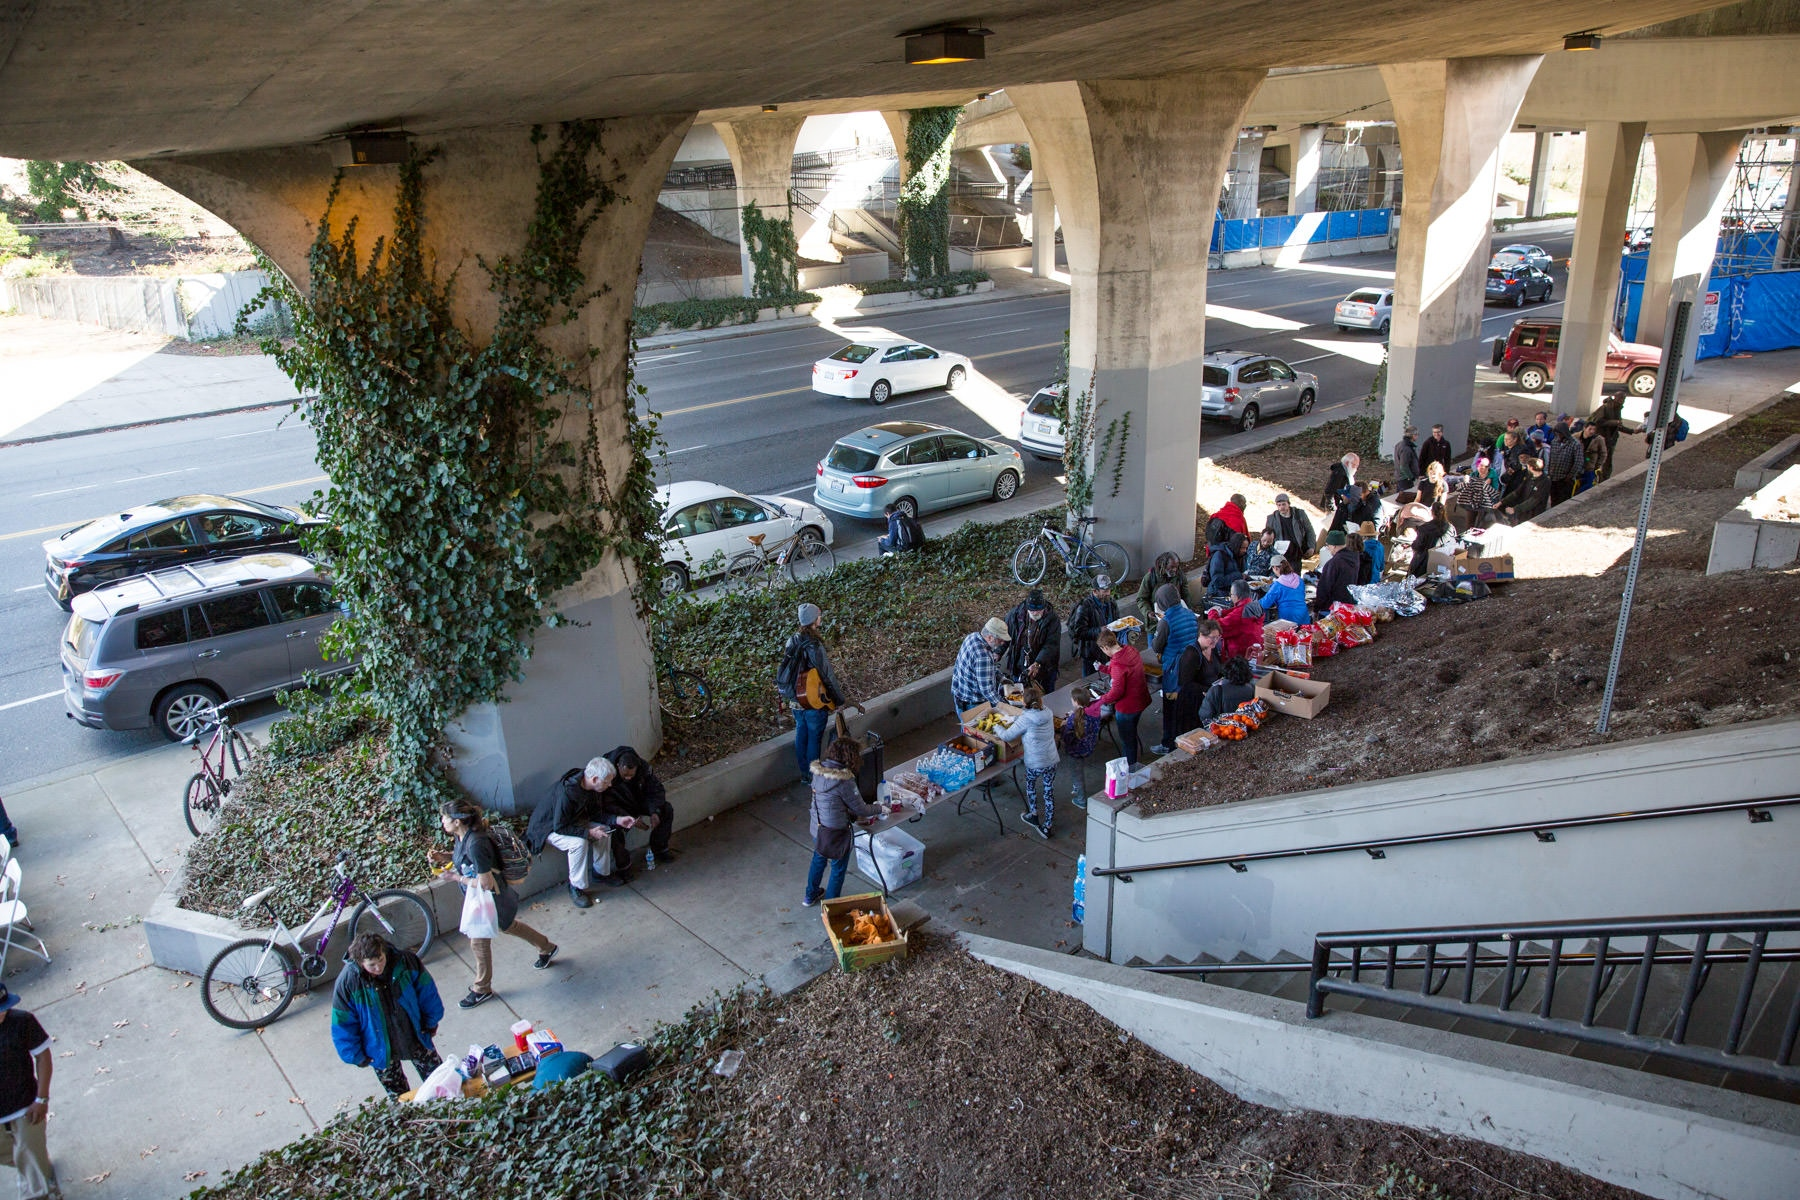 Volunteers from the Rainier Popup Kitchen bring dishes to serve on a sidewalk beside a busy road under an Interstate 90 bridge, where around 100 diners eat at folding tables and chairs. Ms. Vestal and Mr. Kitcheon are regulars.   For the New York Times